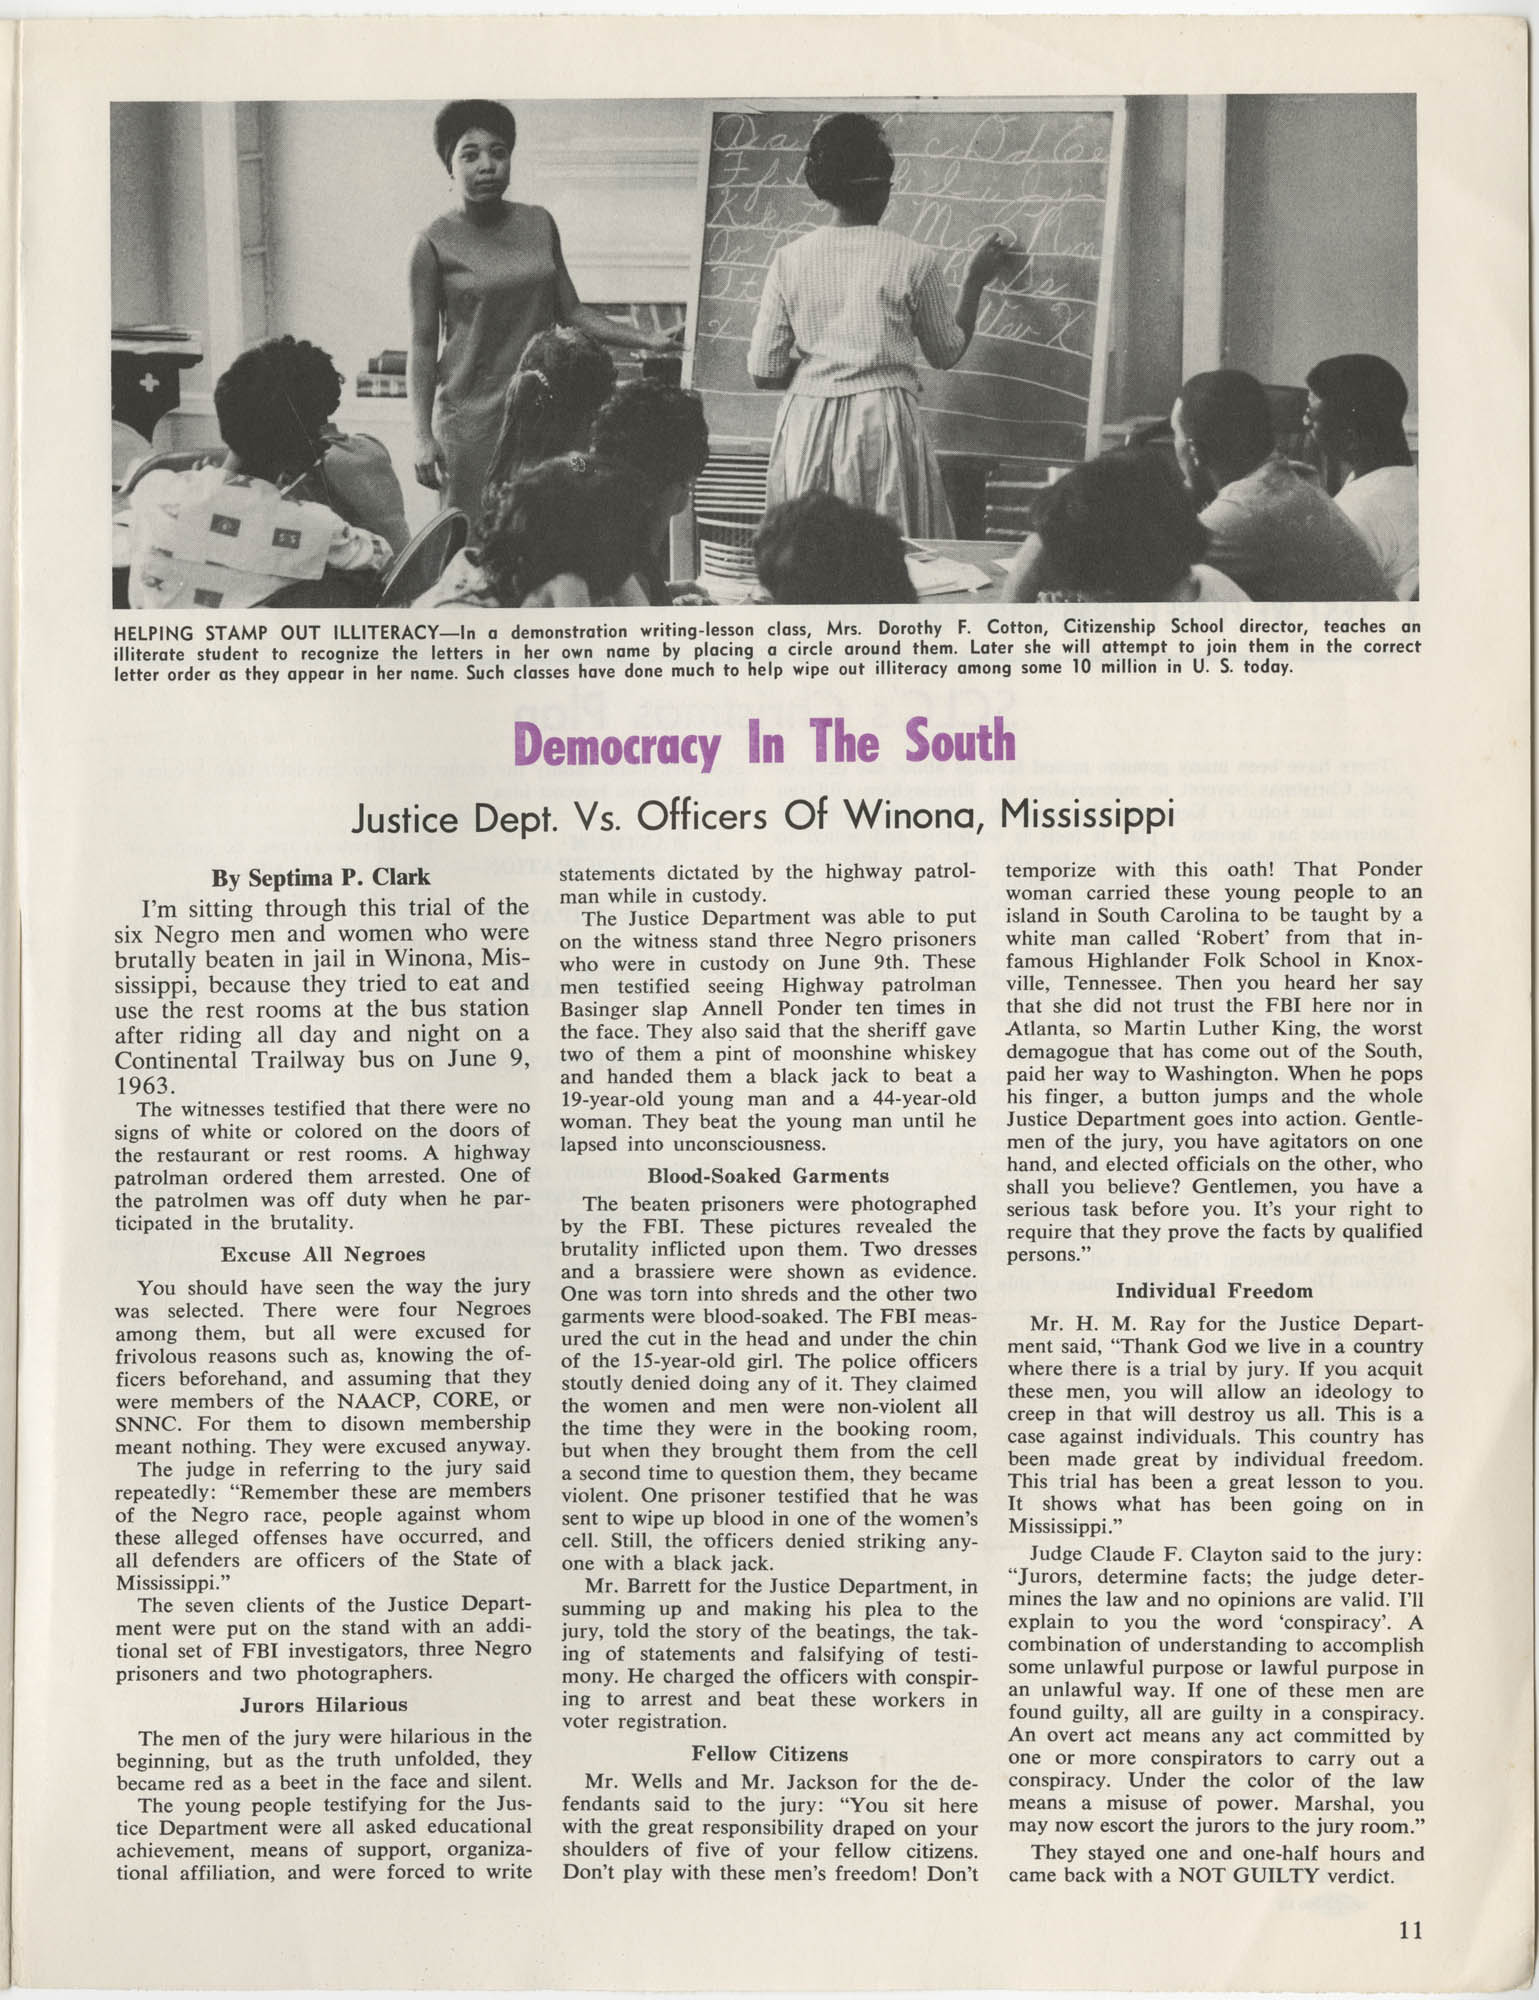 Southern Christian Leadership Conference Newsletter, Volume 2, Number 3, November-December, 1963, Page 11